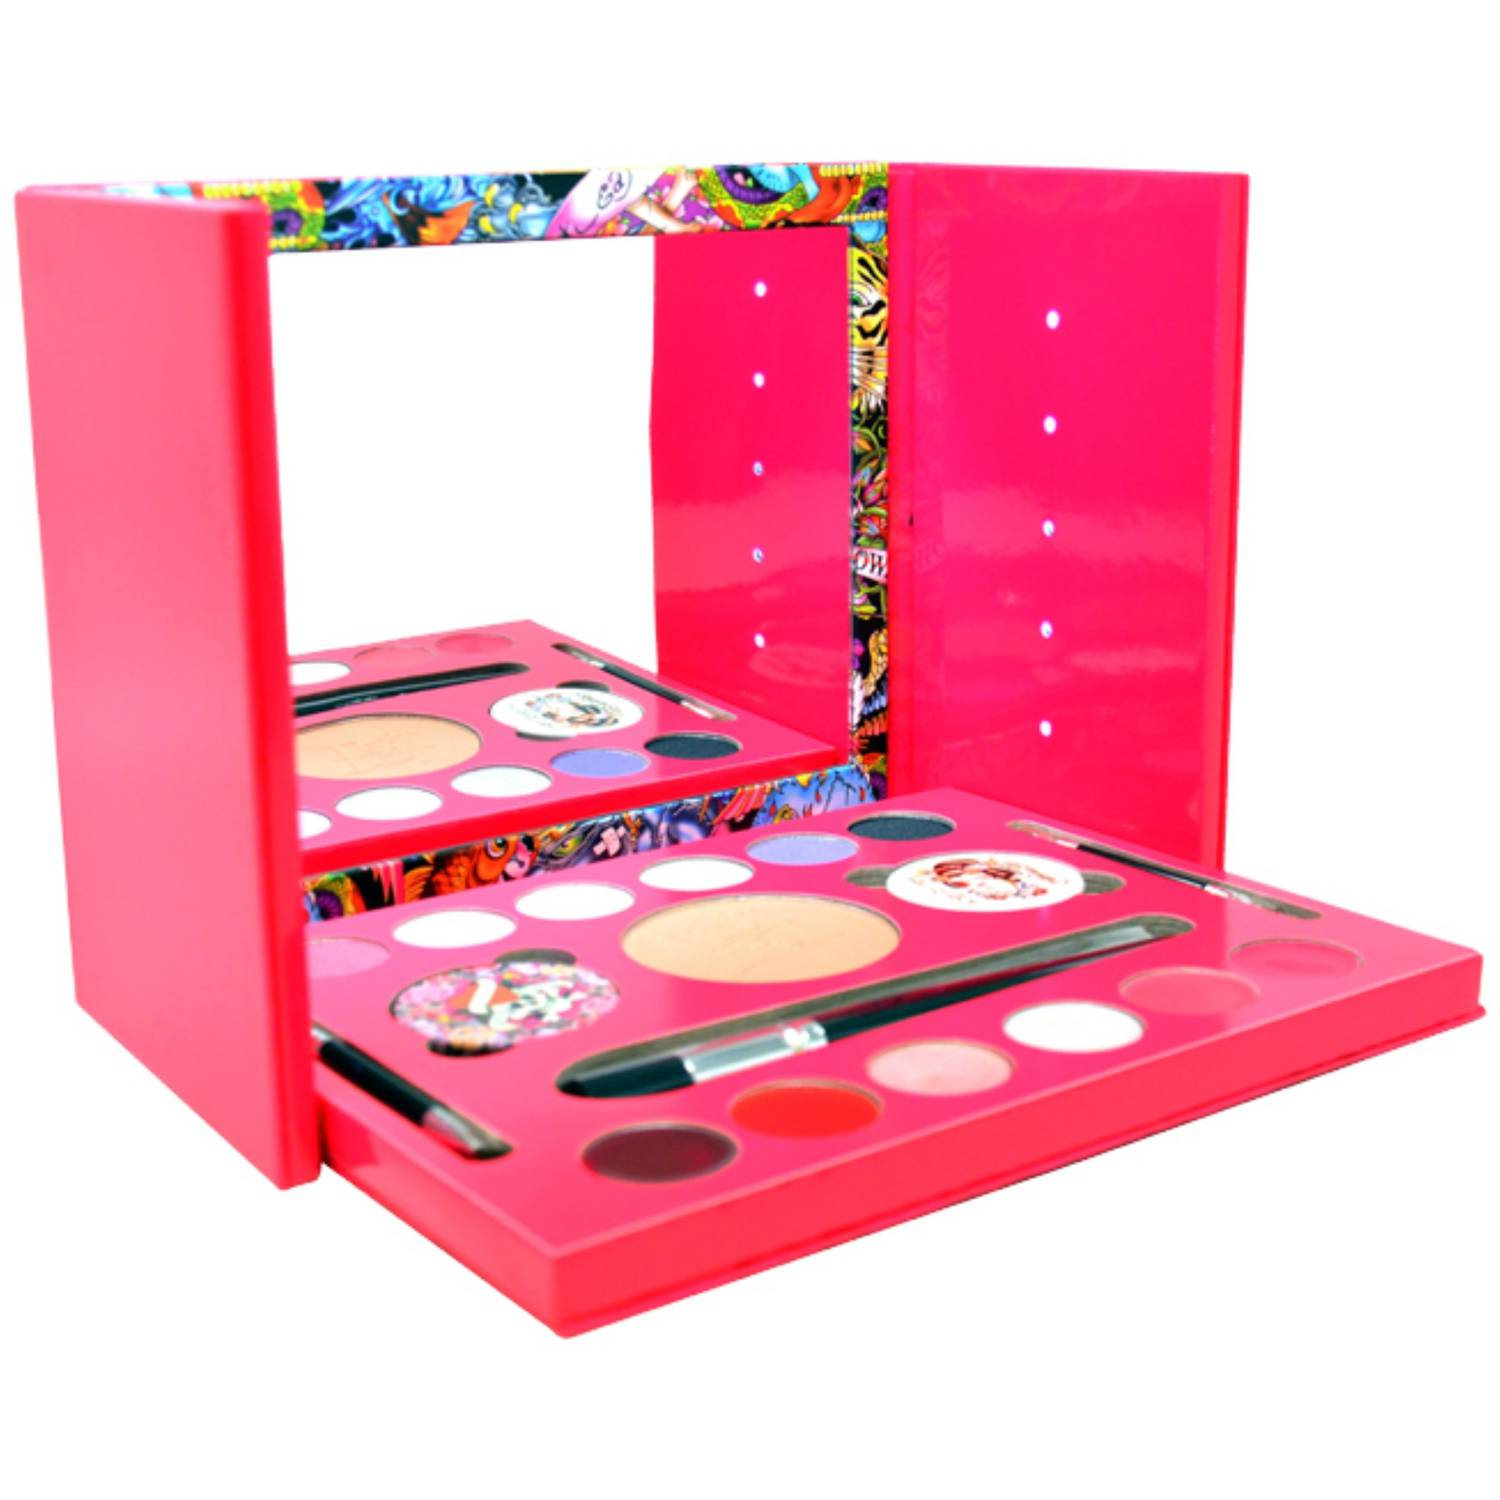 Christian Audigier Ed Hardy Color Geisha for Women Makeup Set, 19 pc